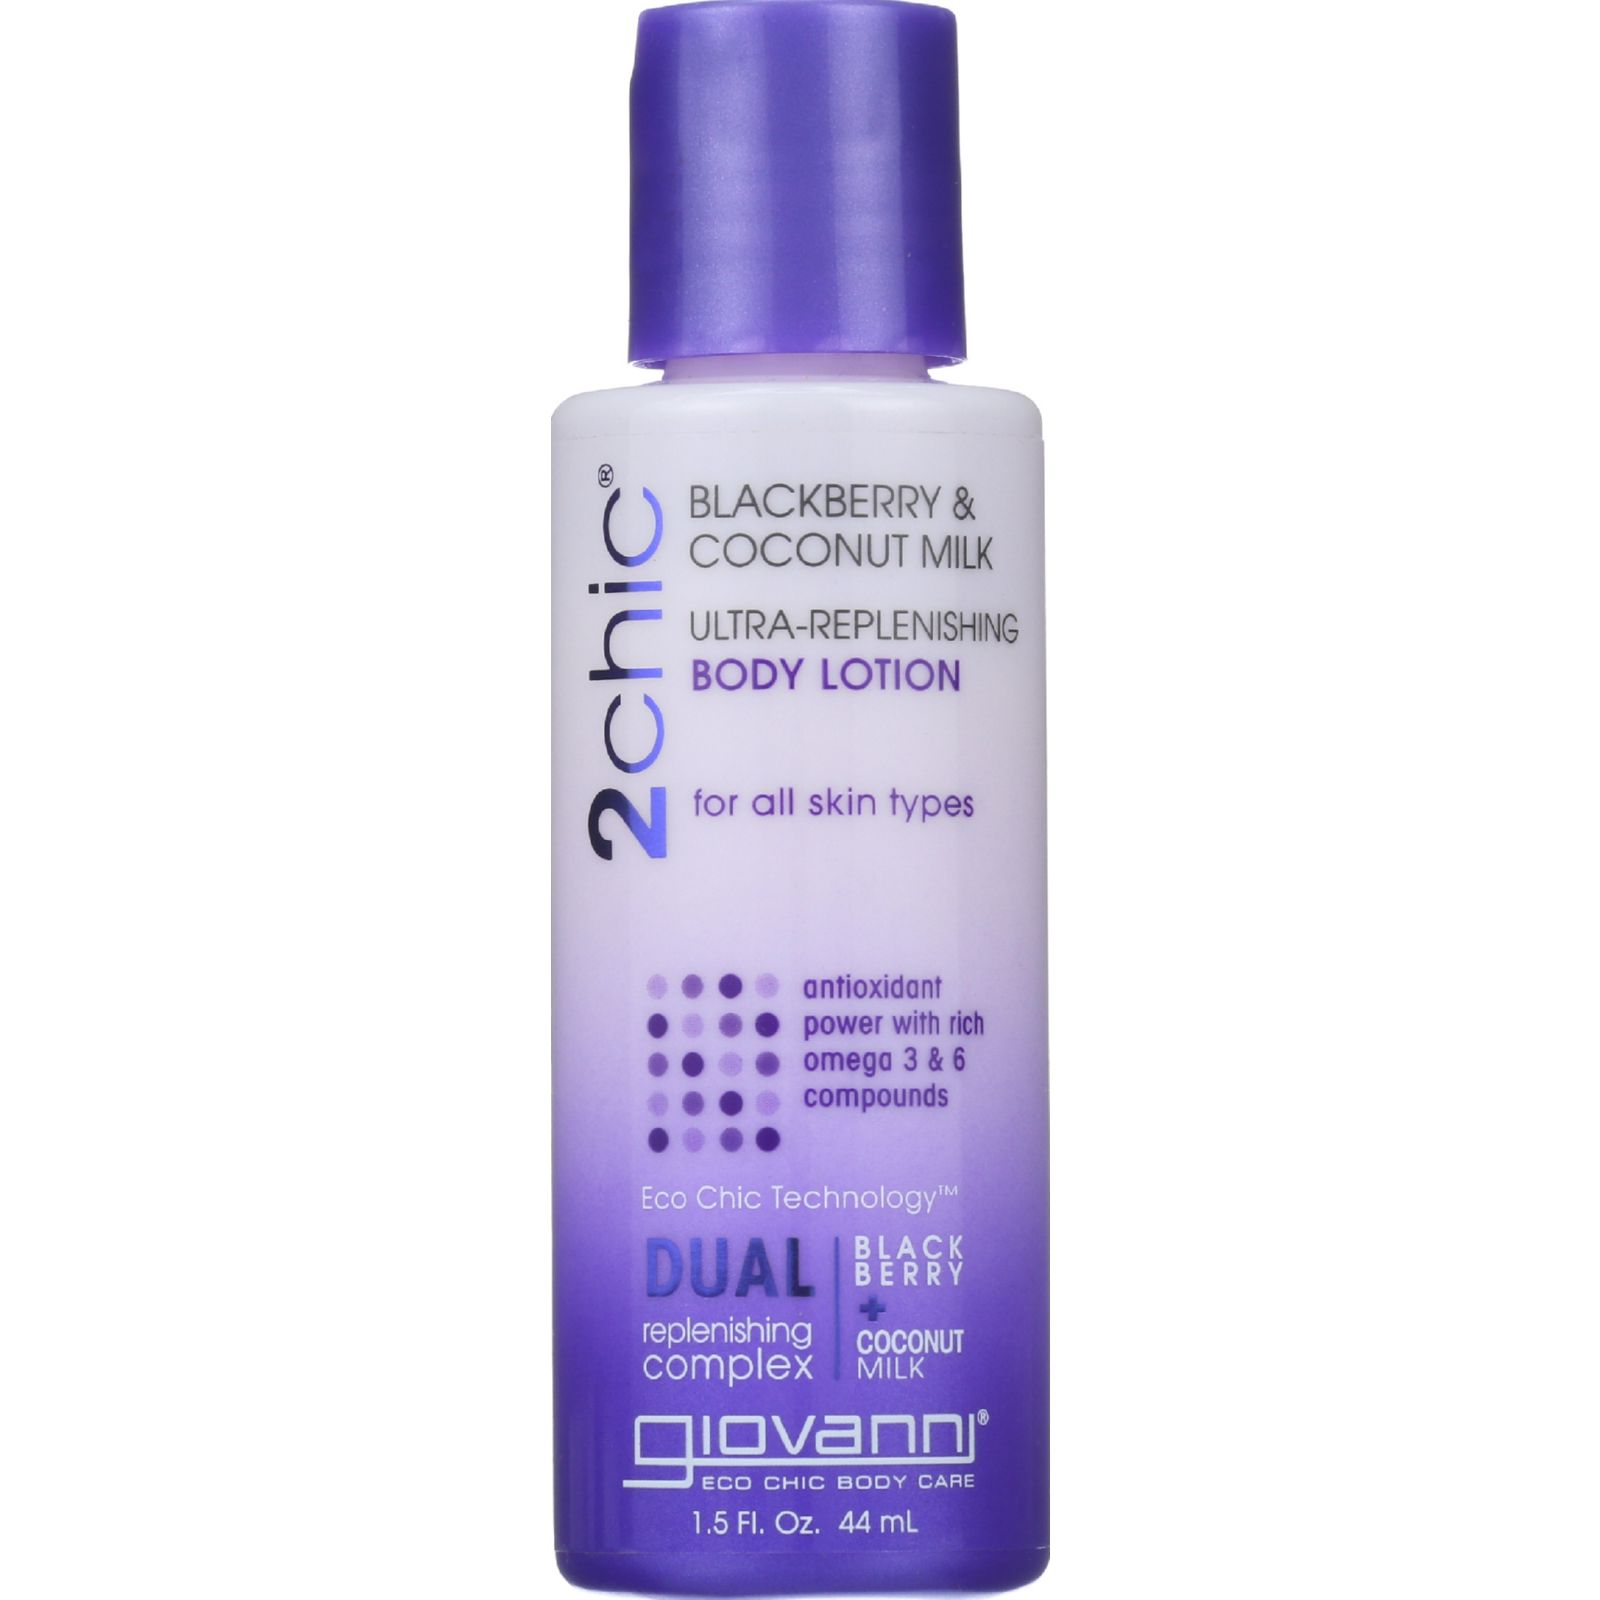 Giovanni Hair Care Products Lotion  2chic  Repairing  Ultra Replenishing  Blackberry and Coconut Milk  1.5 oz